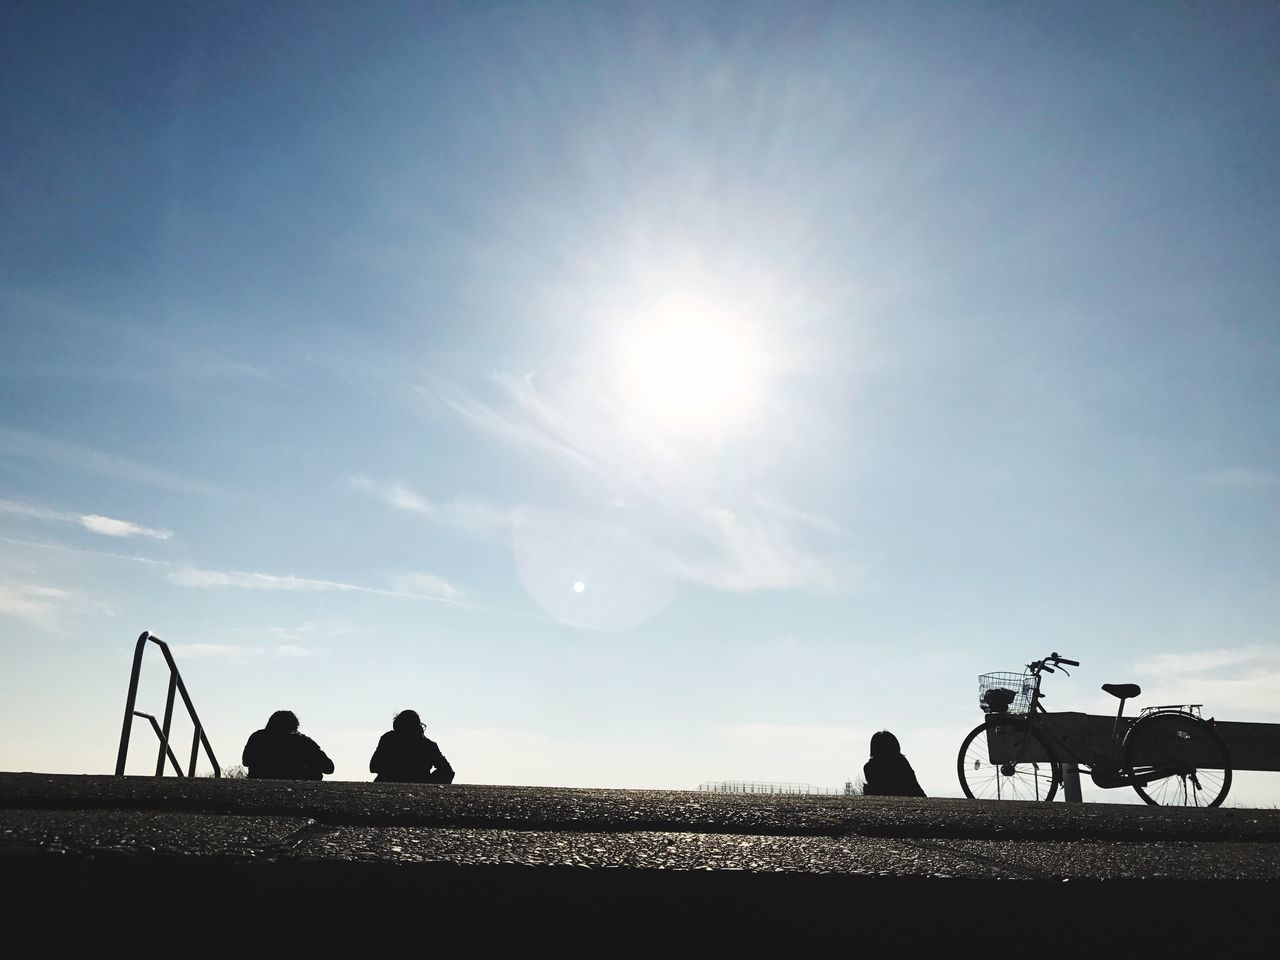 sky, domestic animals, field, men, sunlight, real people, sun, outdoors, silhouette, day, mammal, landscape, sitting, nature, occupation, one person, people